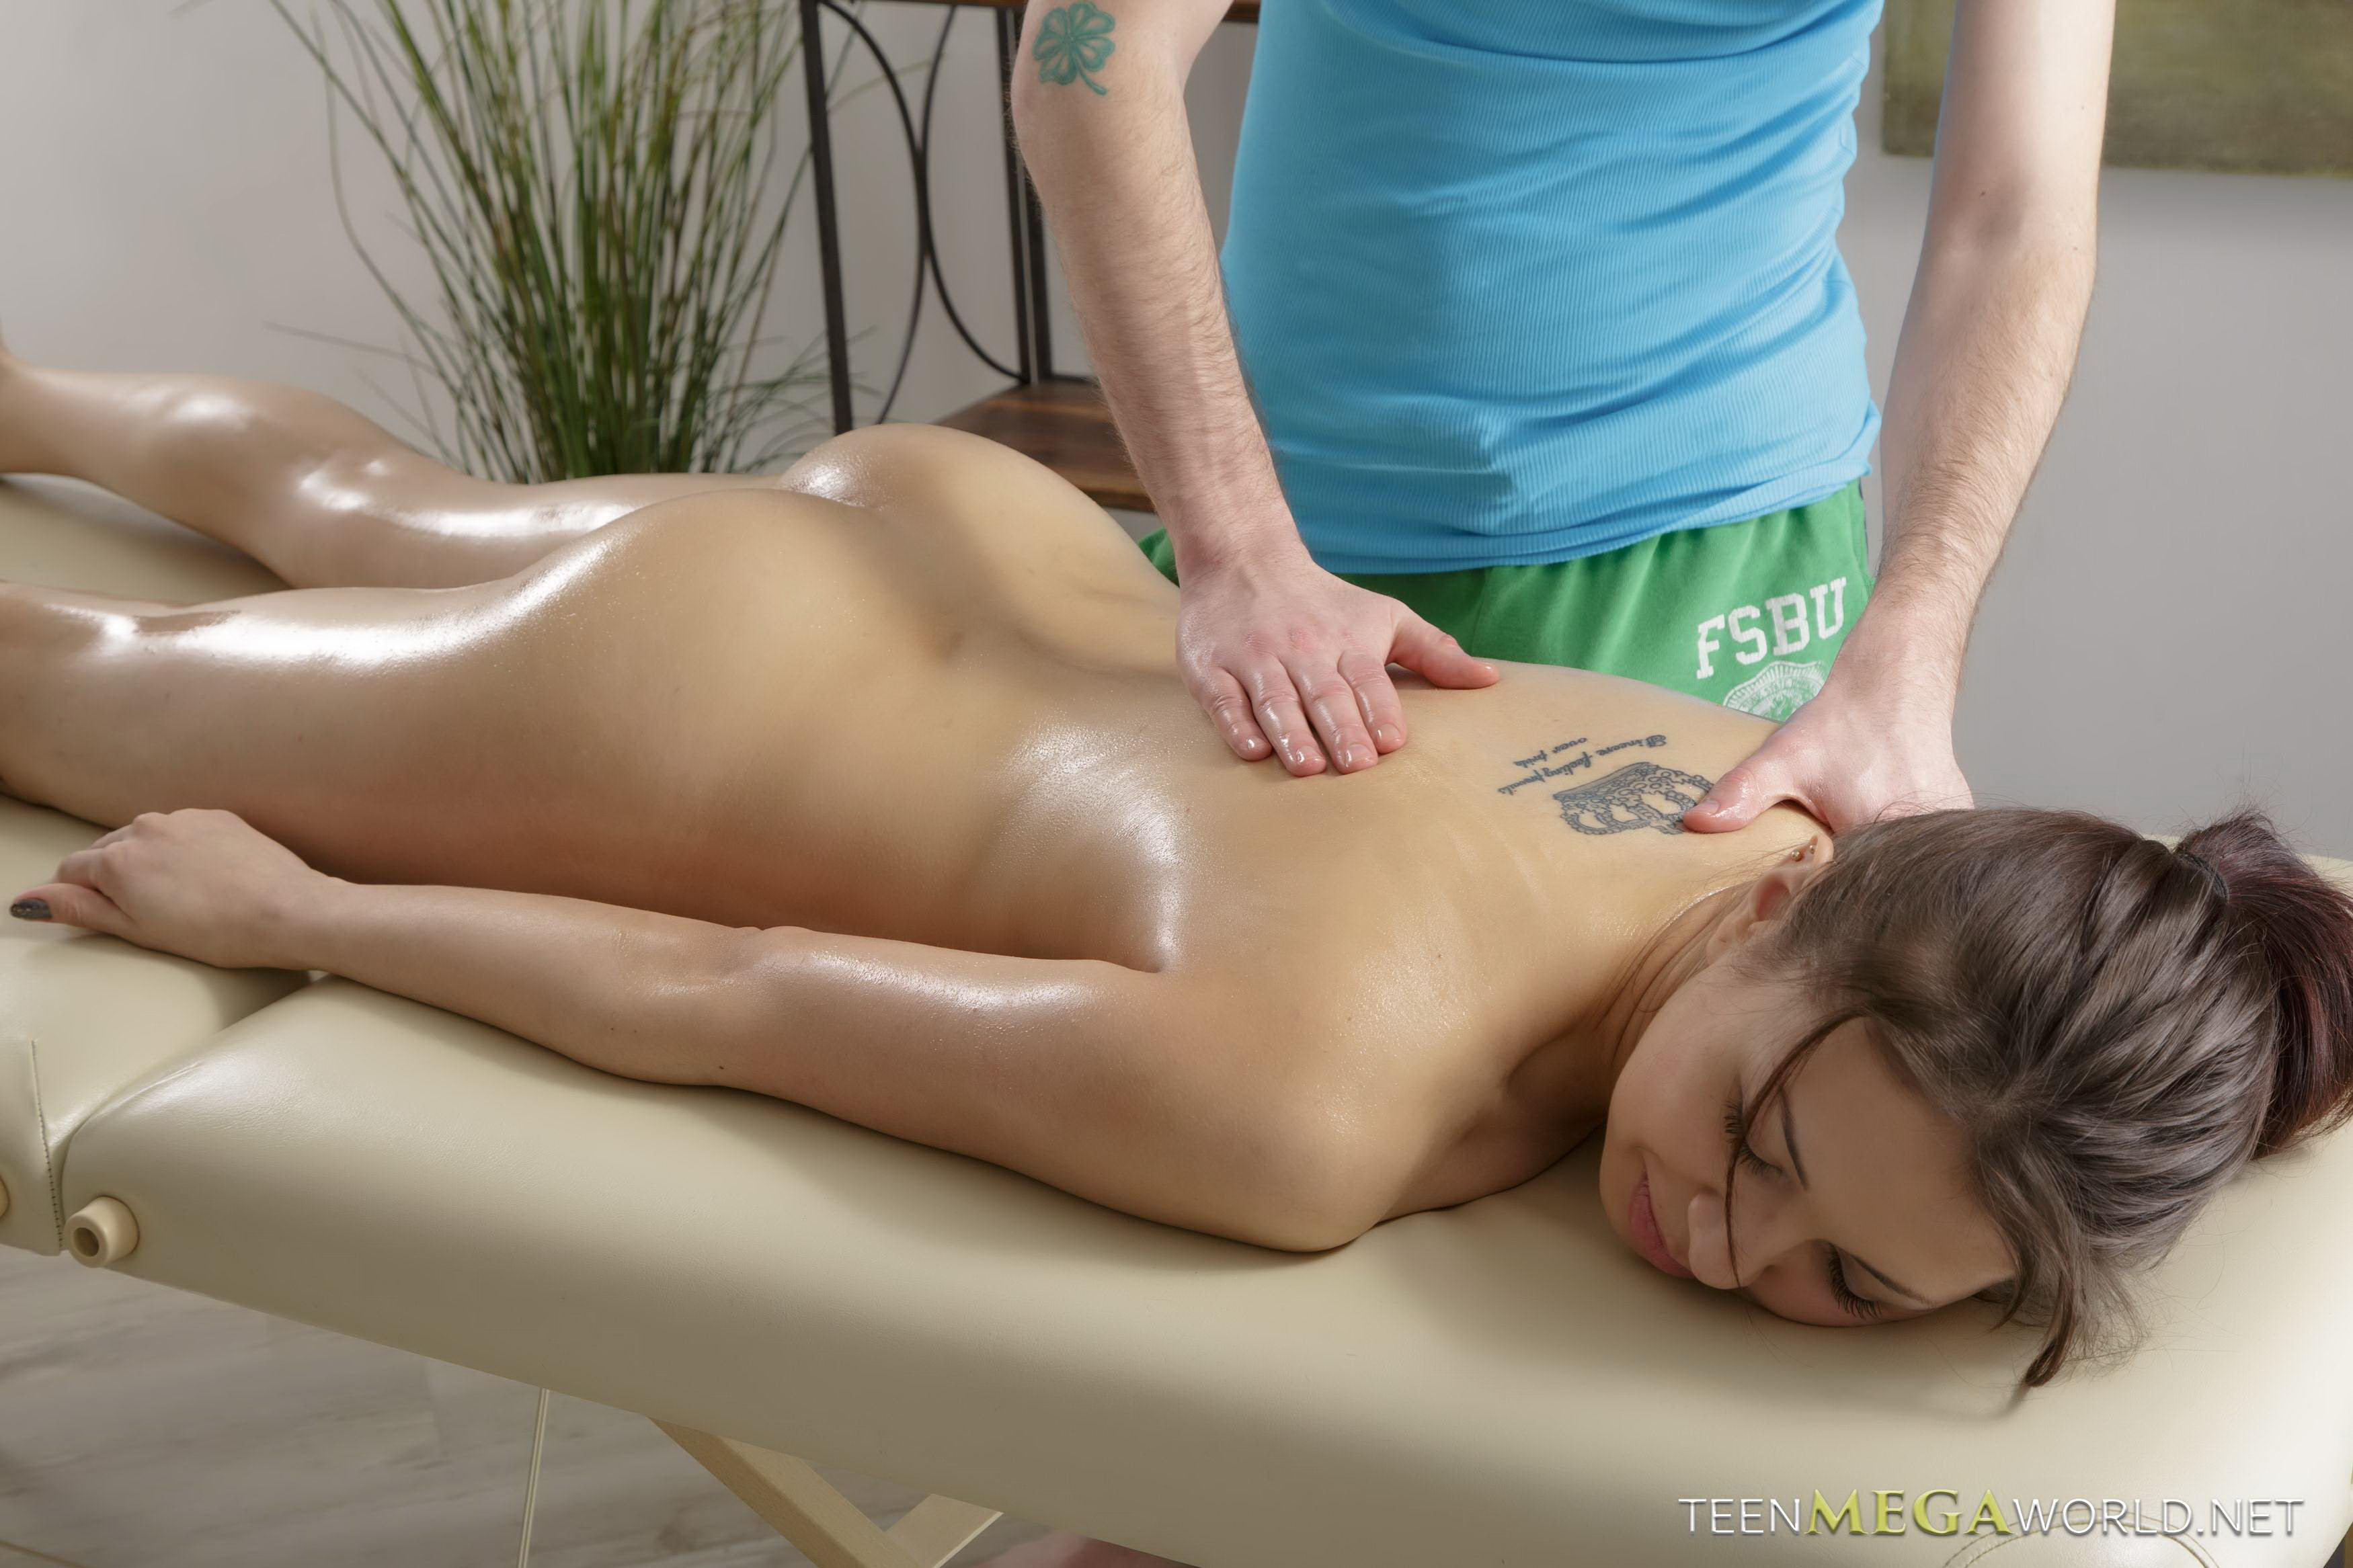 123video download erotic massage massage